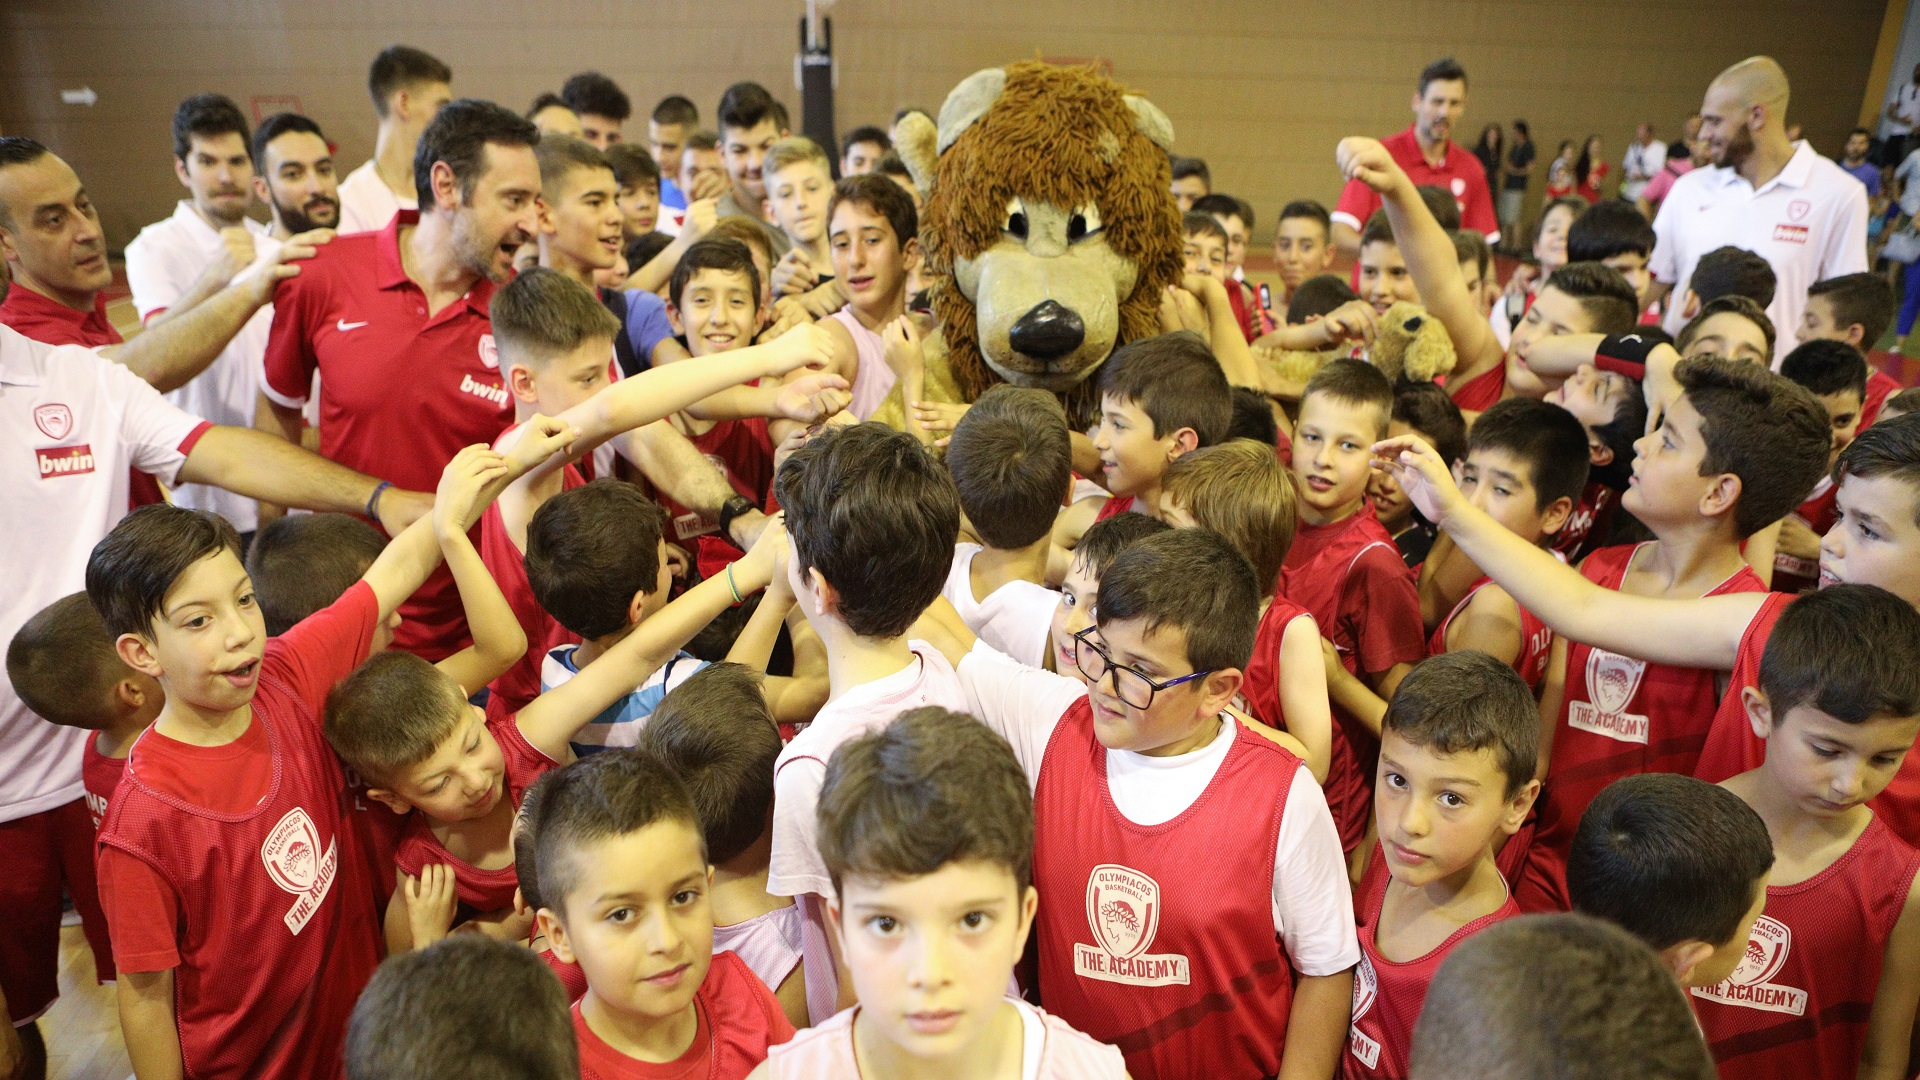 OlympiacosBC The Academy: The closing ceremony (pics + vid)